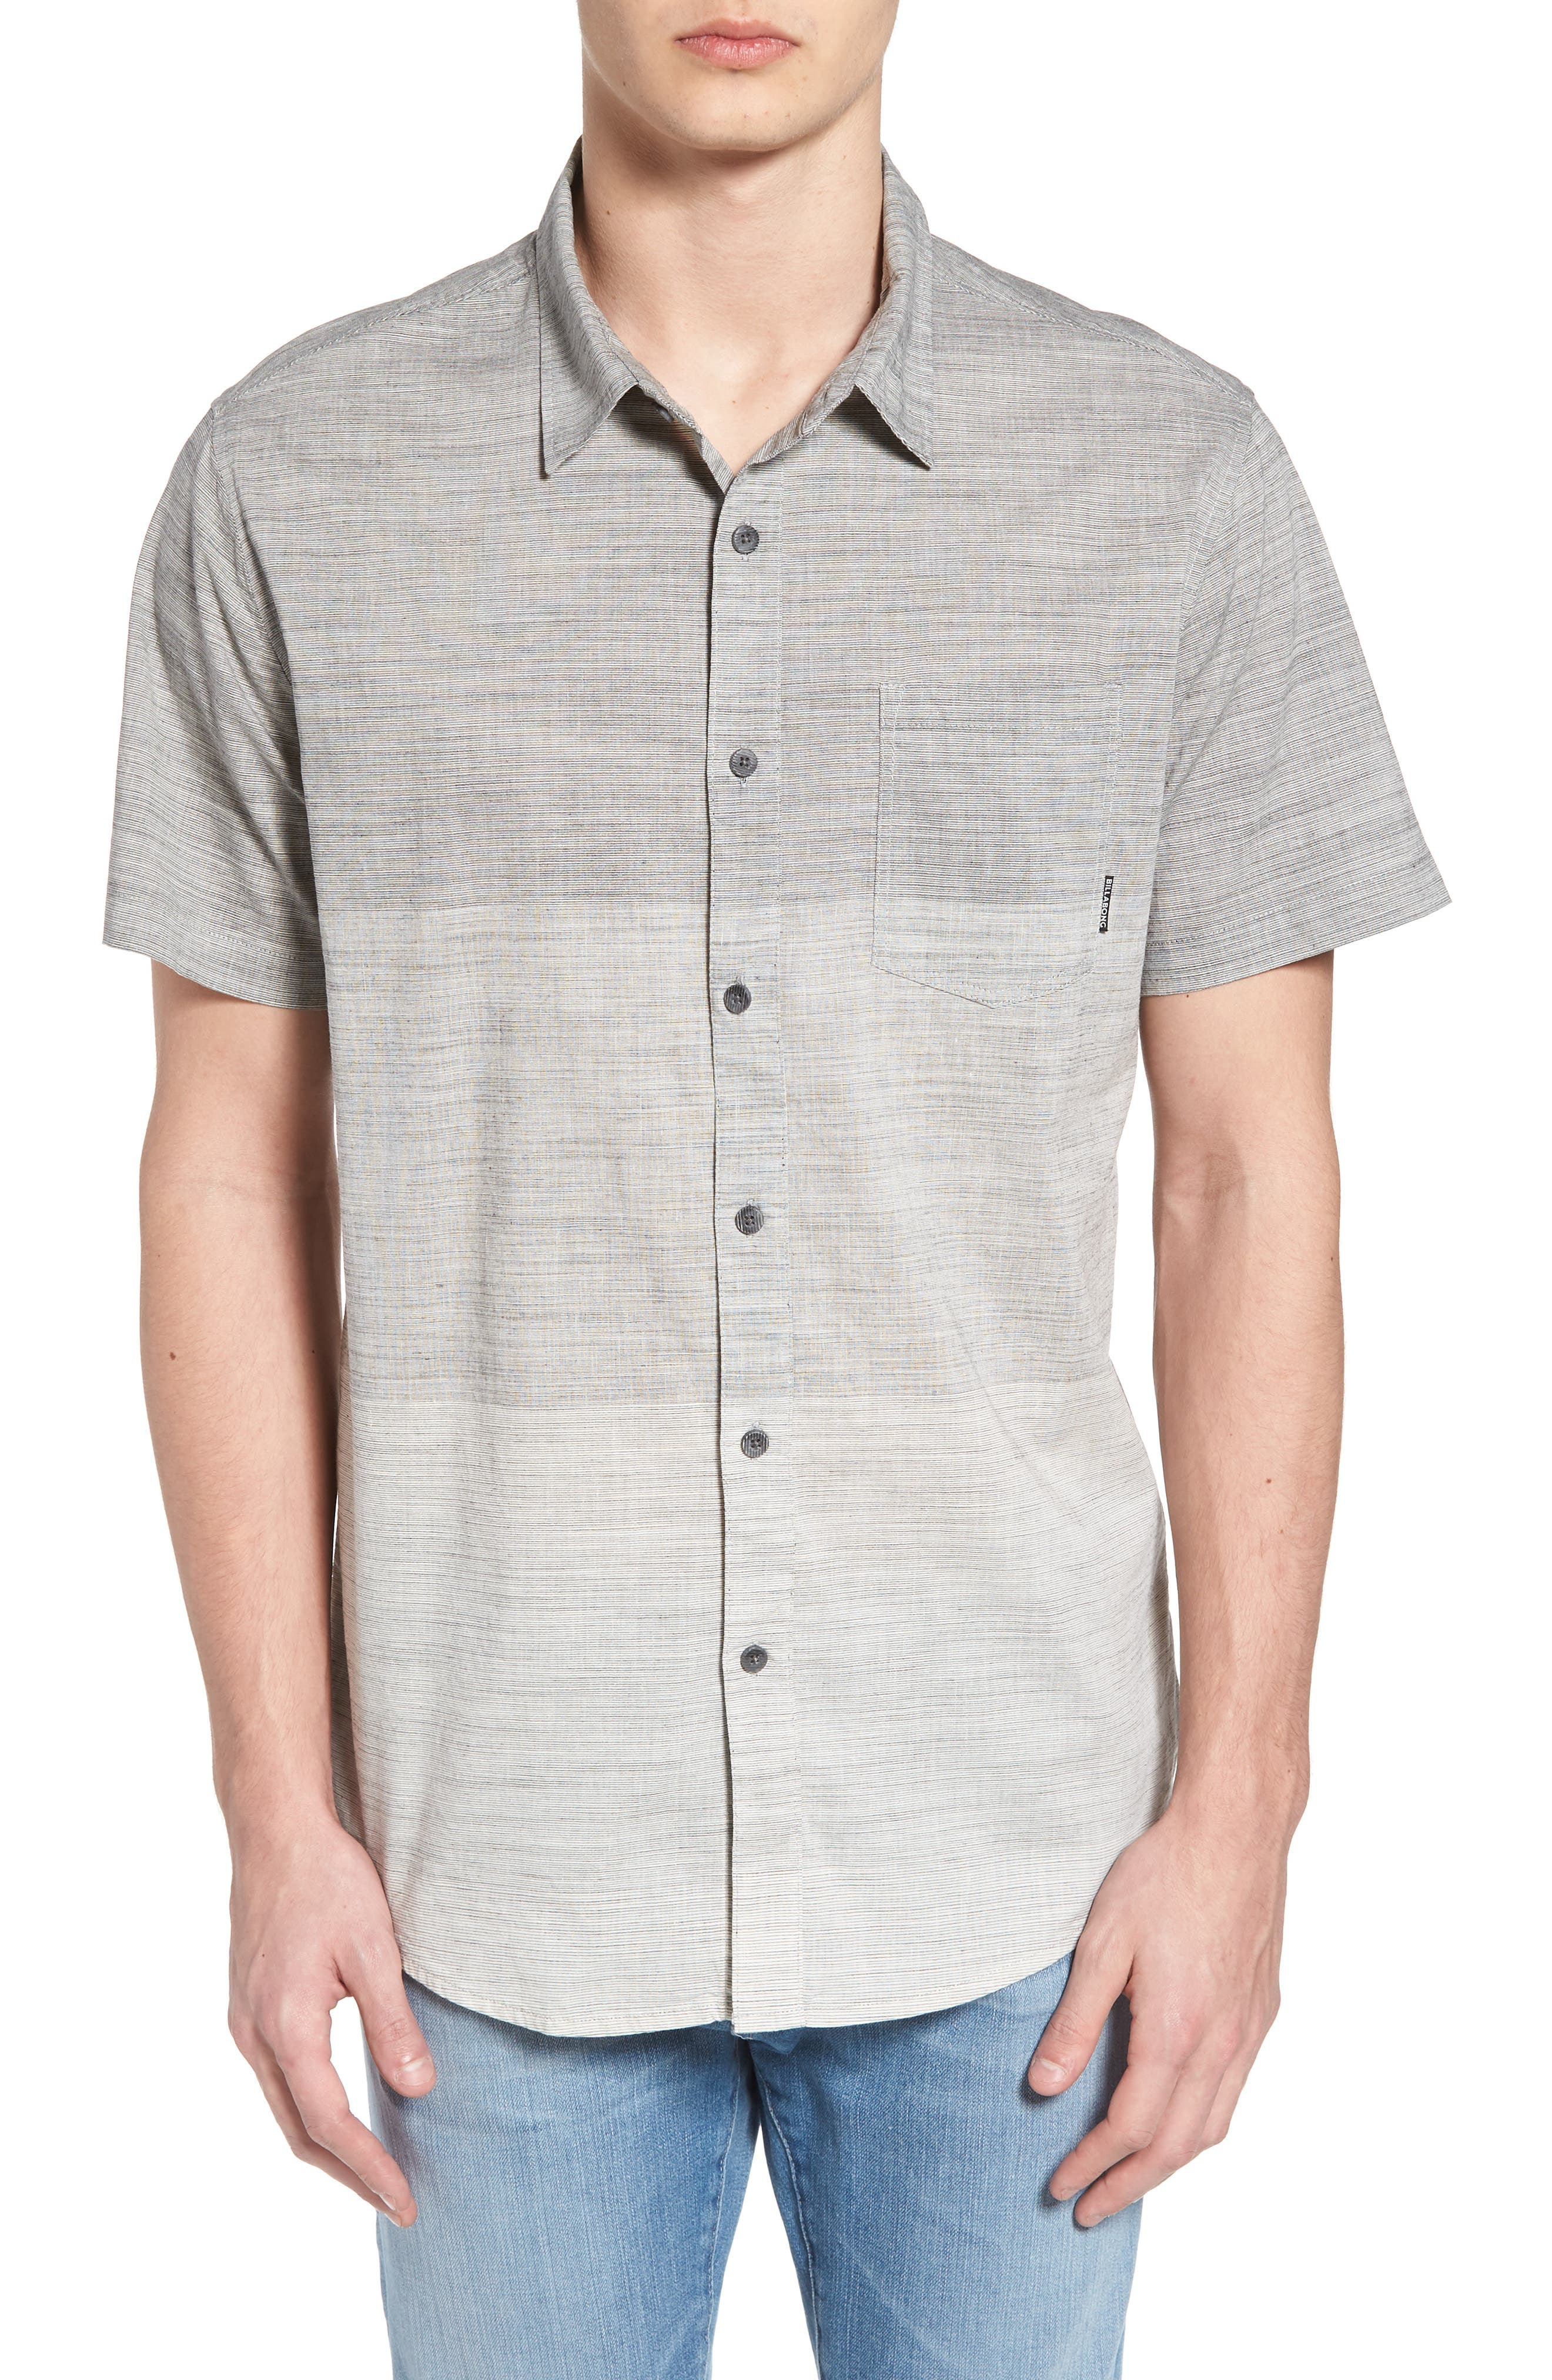 Faderade Short Sleeve Shirt,                         Main,                         color, 020